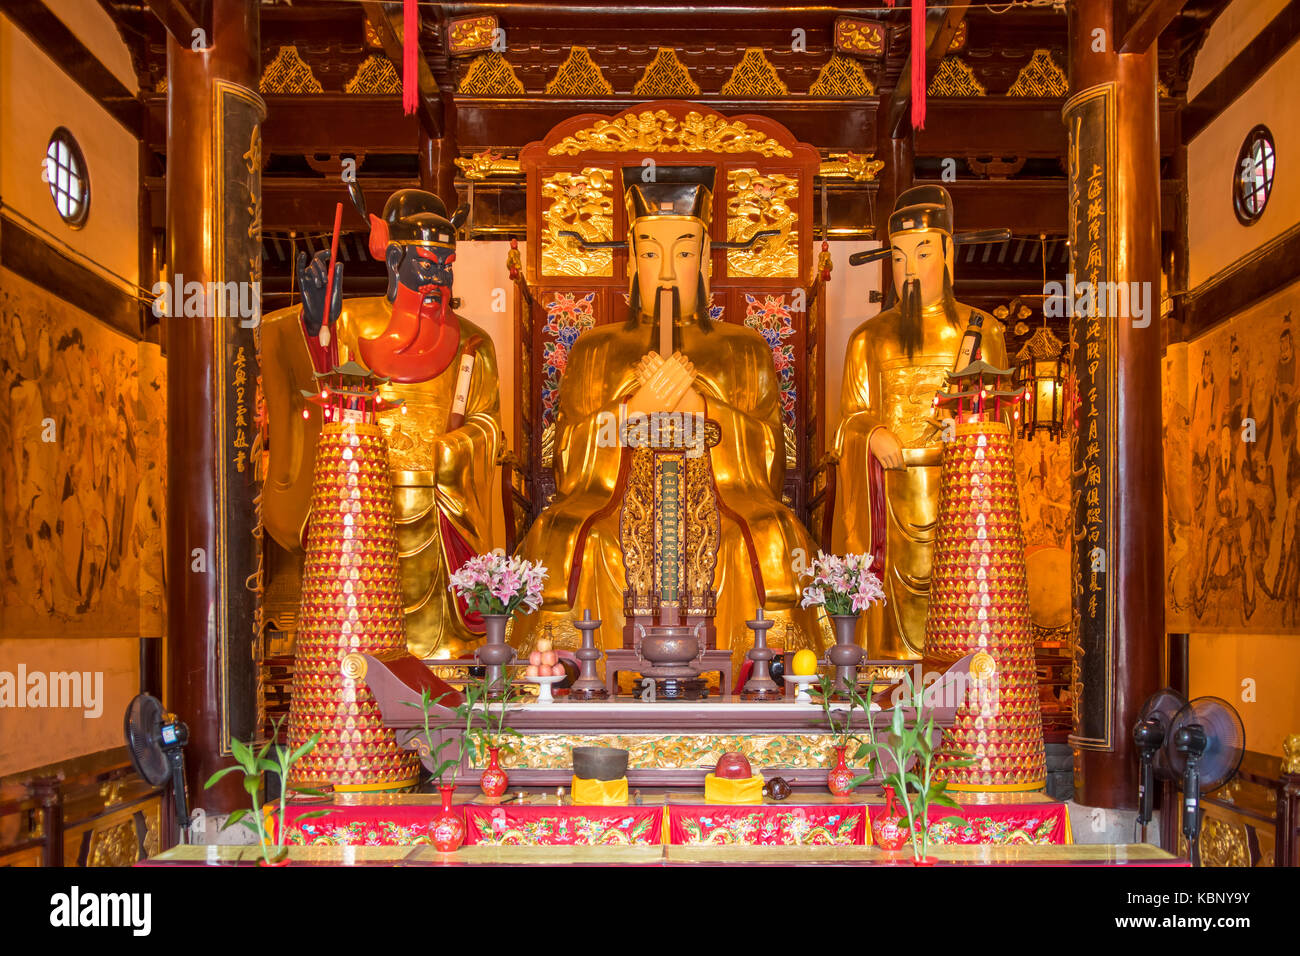 Inside Jing'an Temple, Shanghai, China - Stock Image